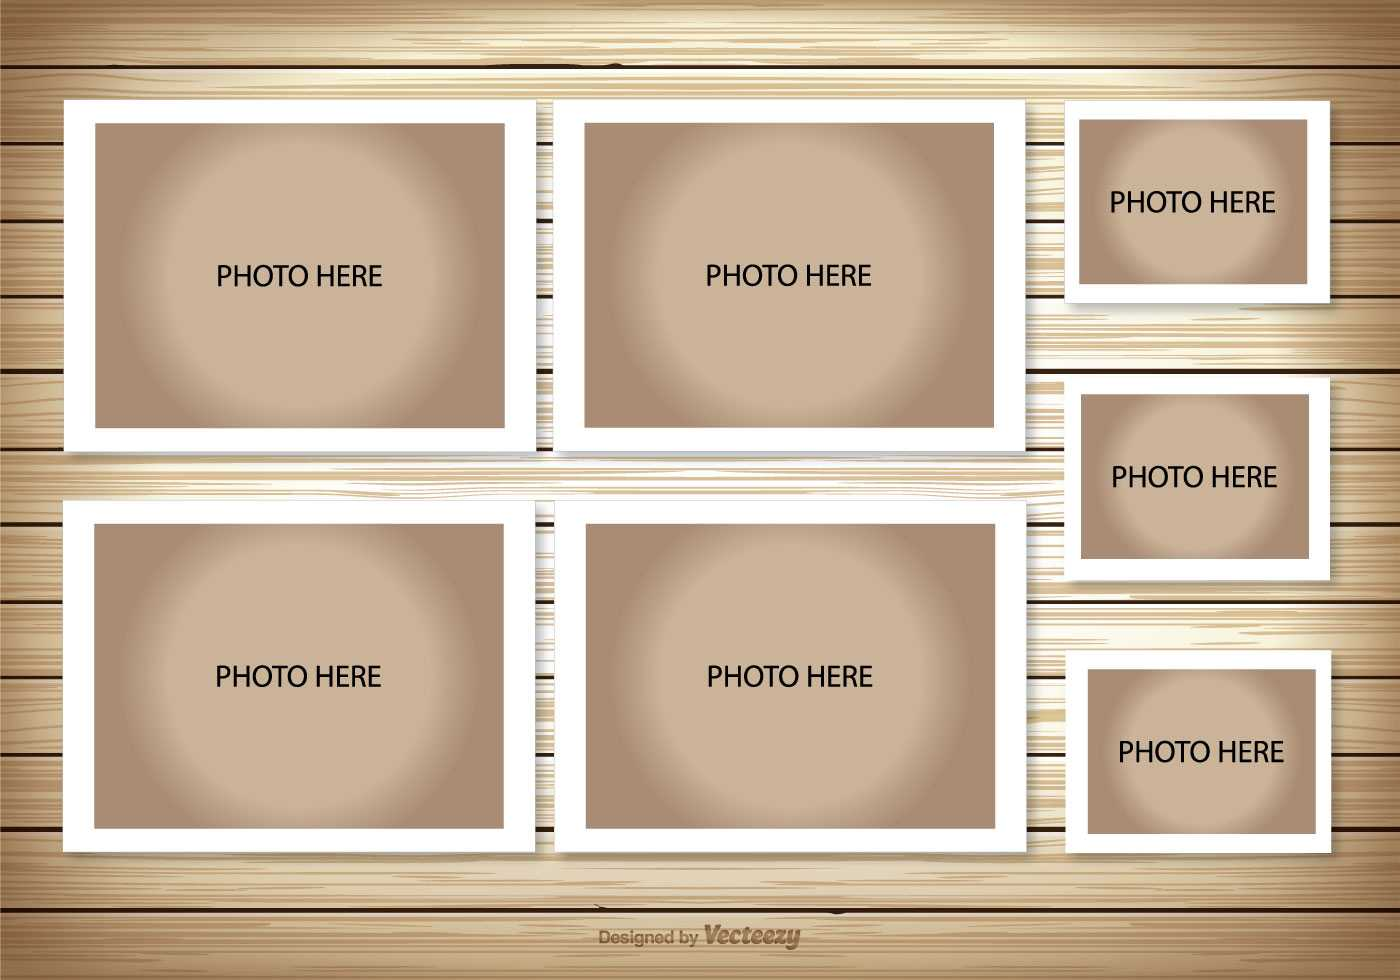 Photo Collage Template - Download Free Vectors, Clipart With Birthday Card Collage Template